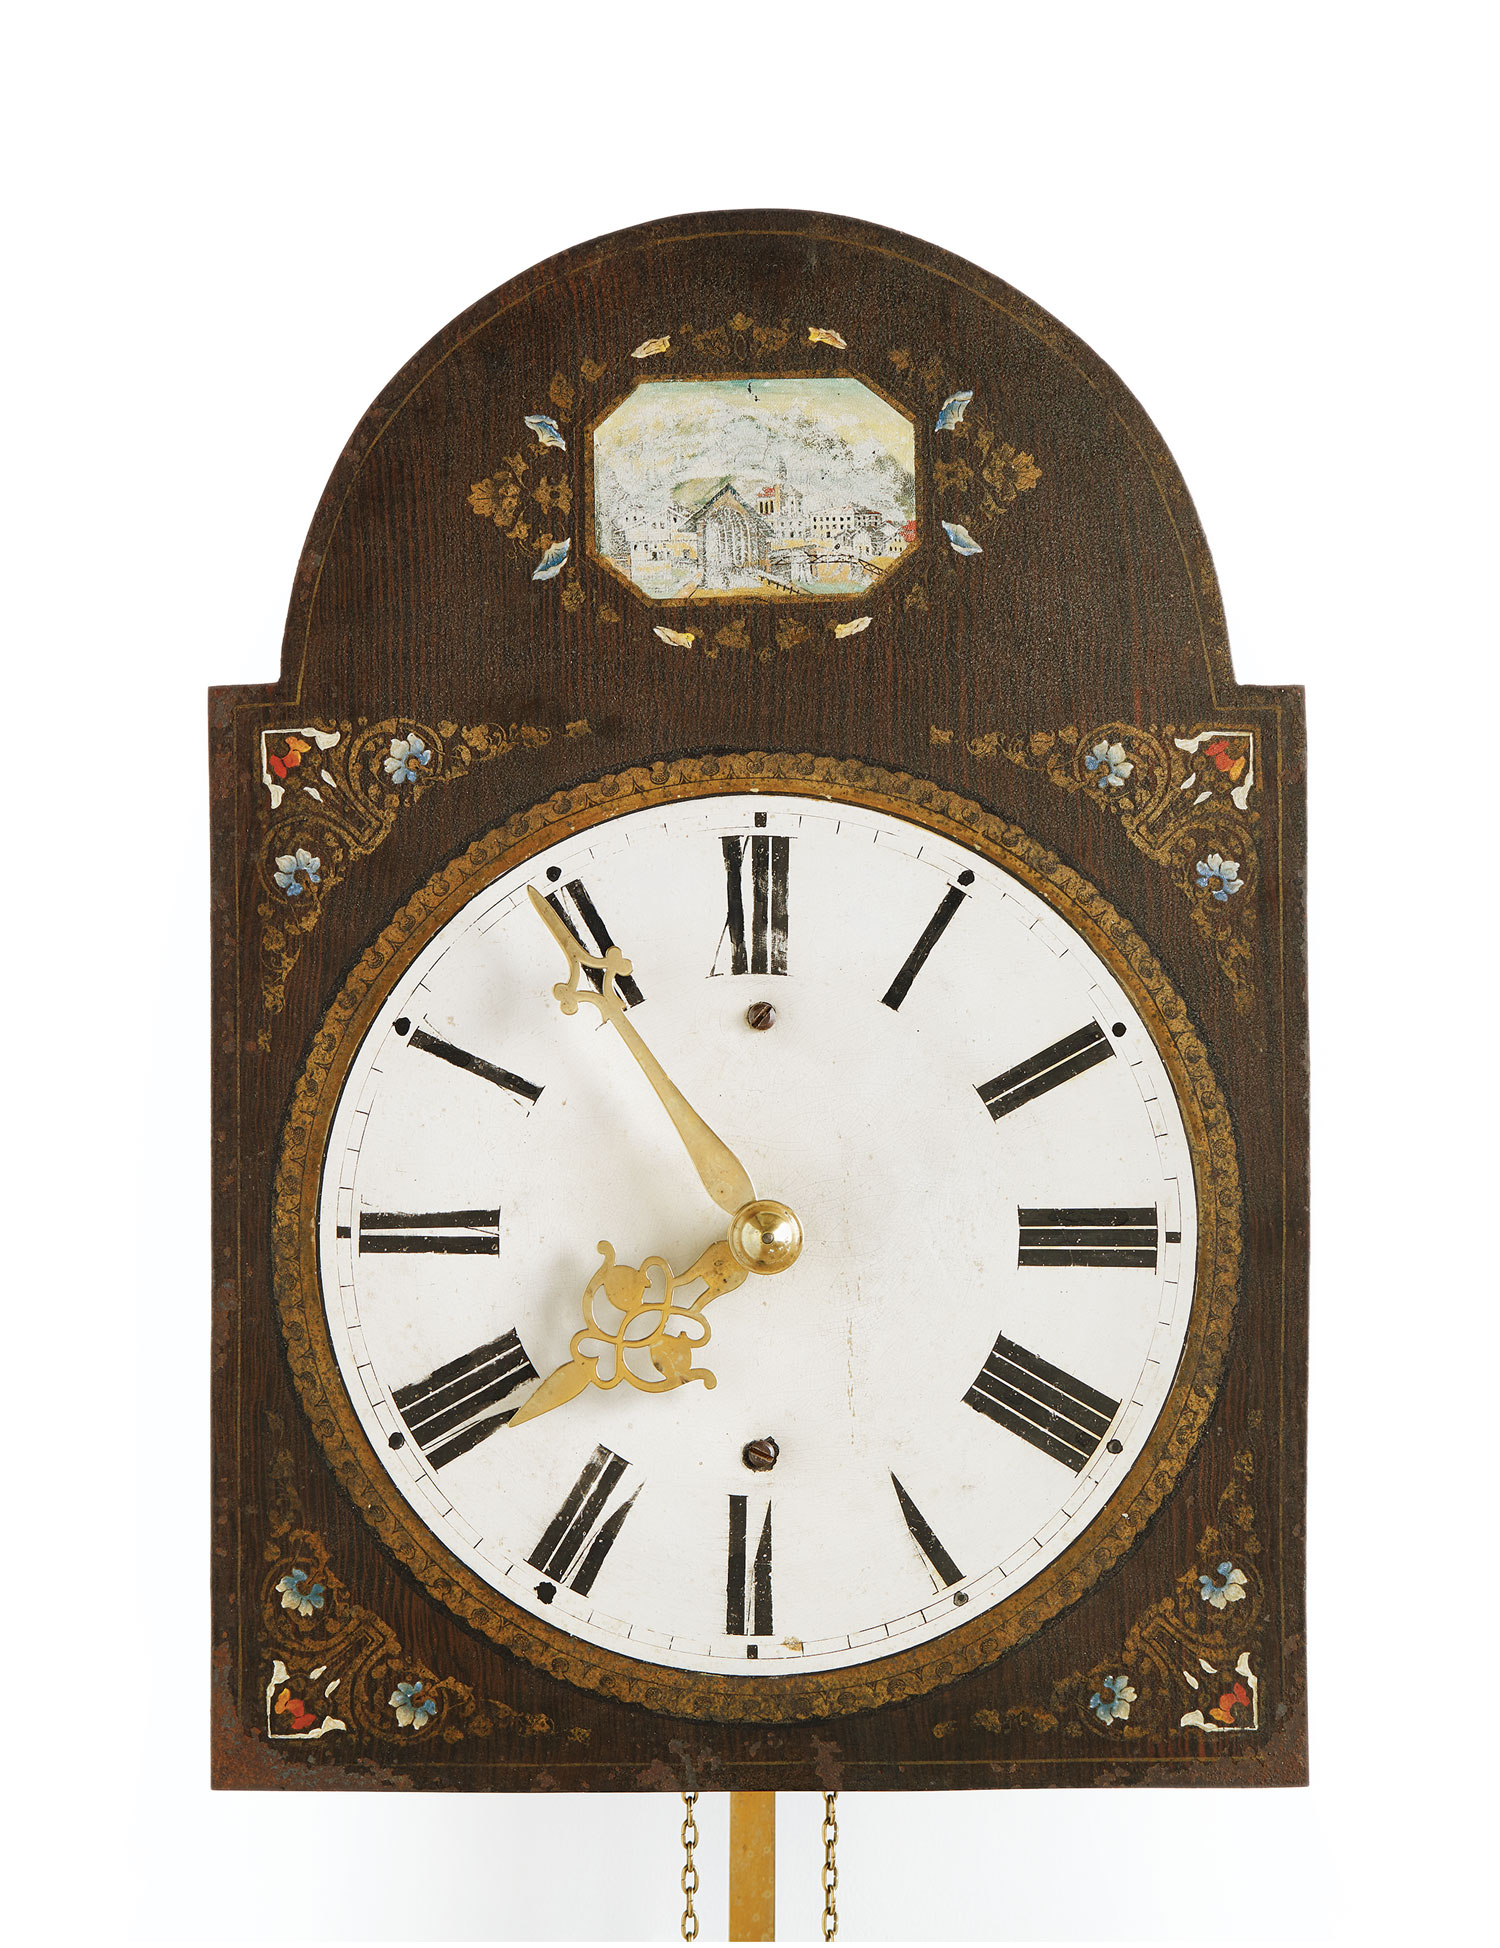 Mandtler Clock no. 8267, 1865. Mennonite Heritage Village 1966.406.1 (MC0217)